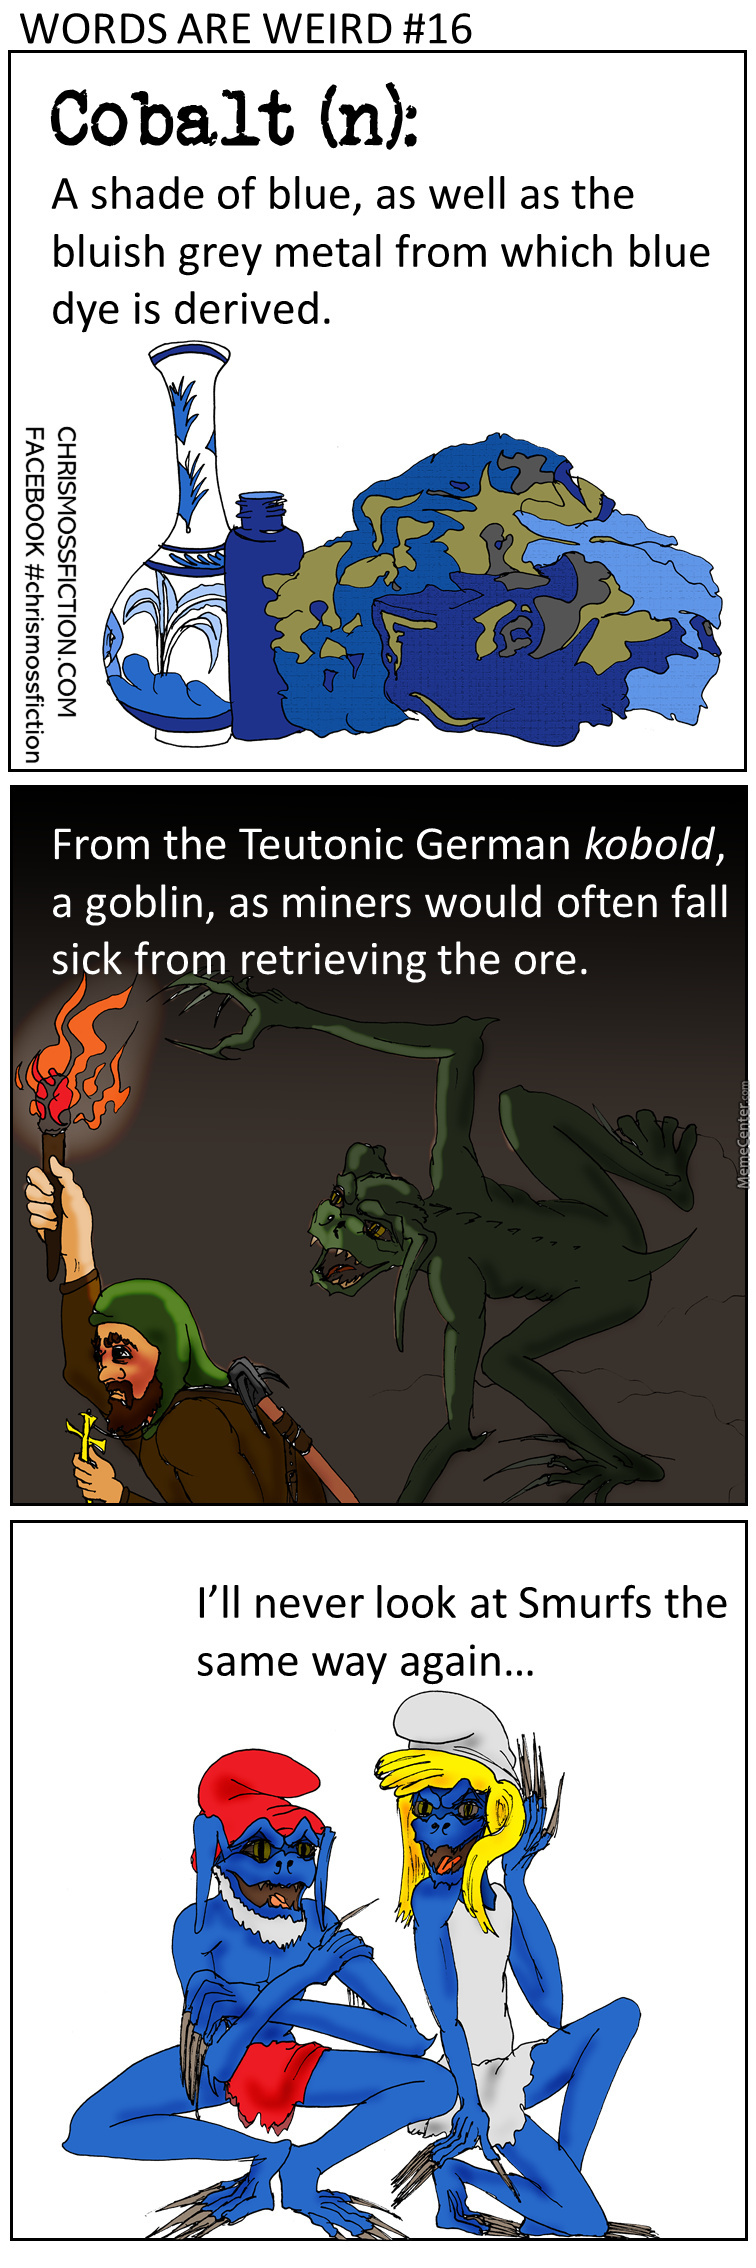 Now I Want To Hear Kobolds Sing The Smurf Song...